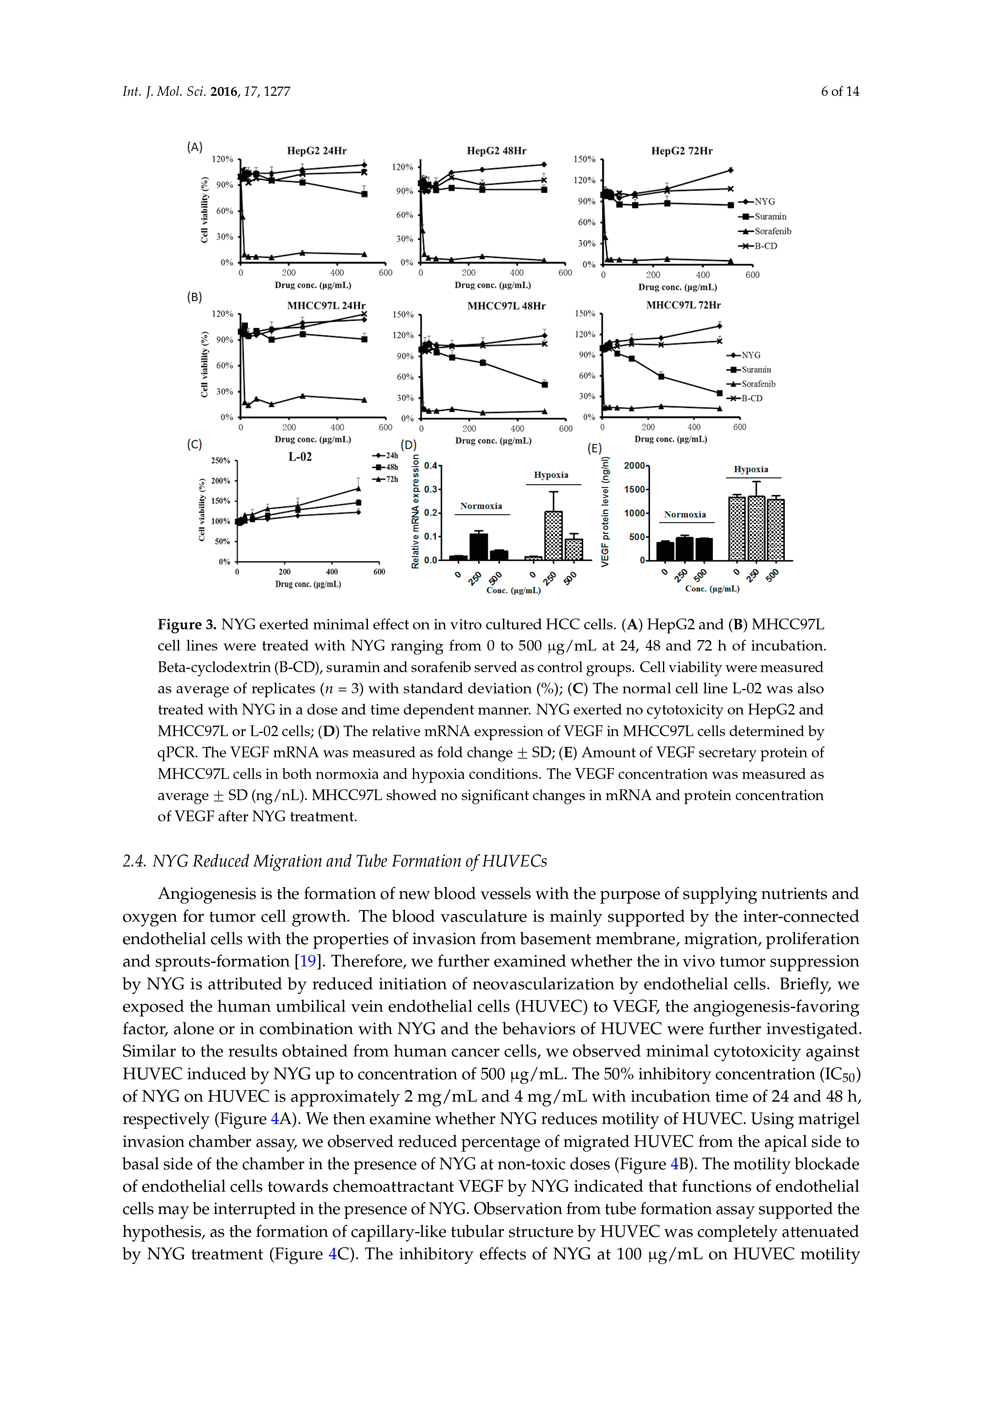 Potential of Pigment from Saw Palmetto for Adjuvant Therapy of Hepatocellular Carcinoma P6